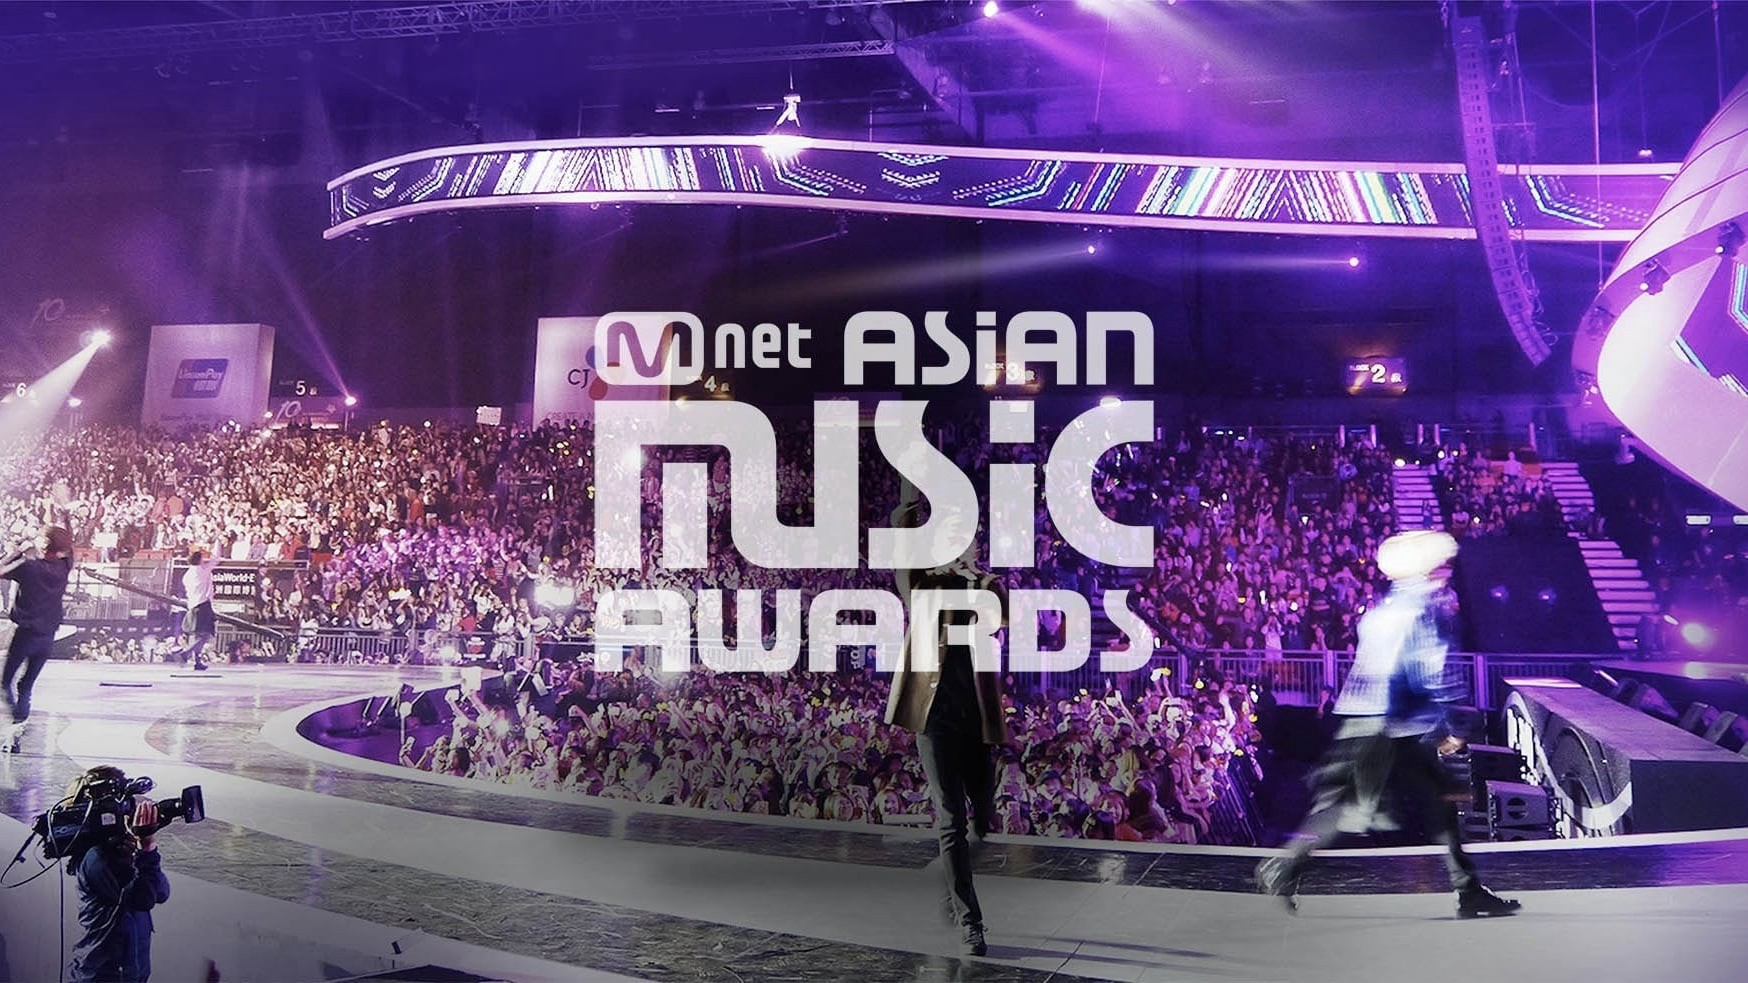 Mnet responds to criticisms of bad treatment of idols in 2020 MAMA